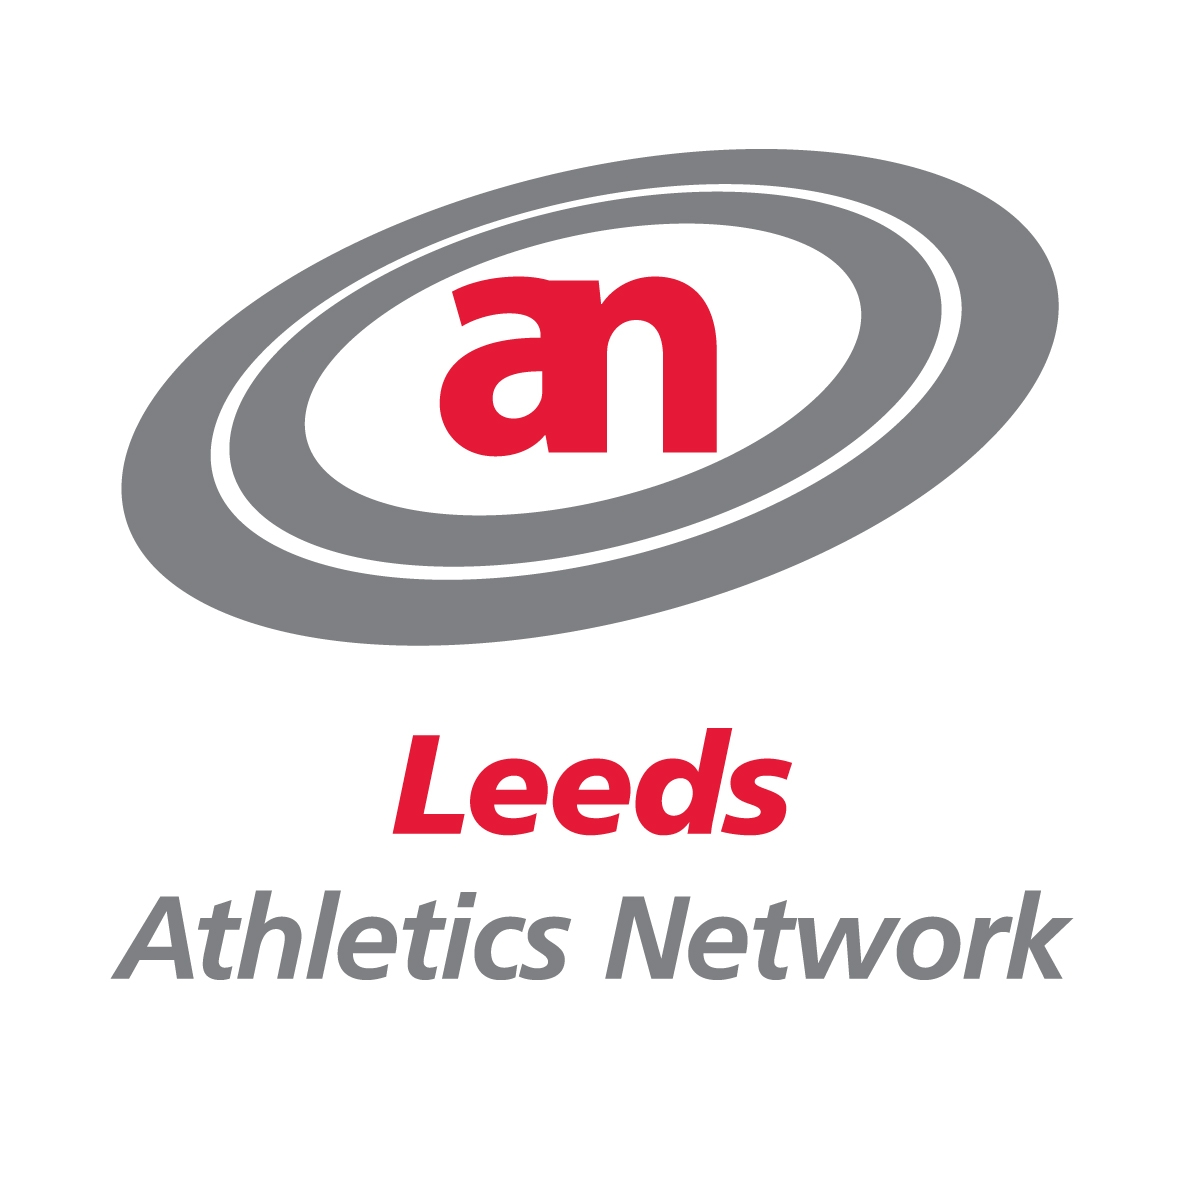 Leeds Athletics Network logo